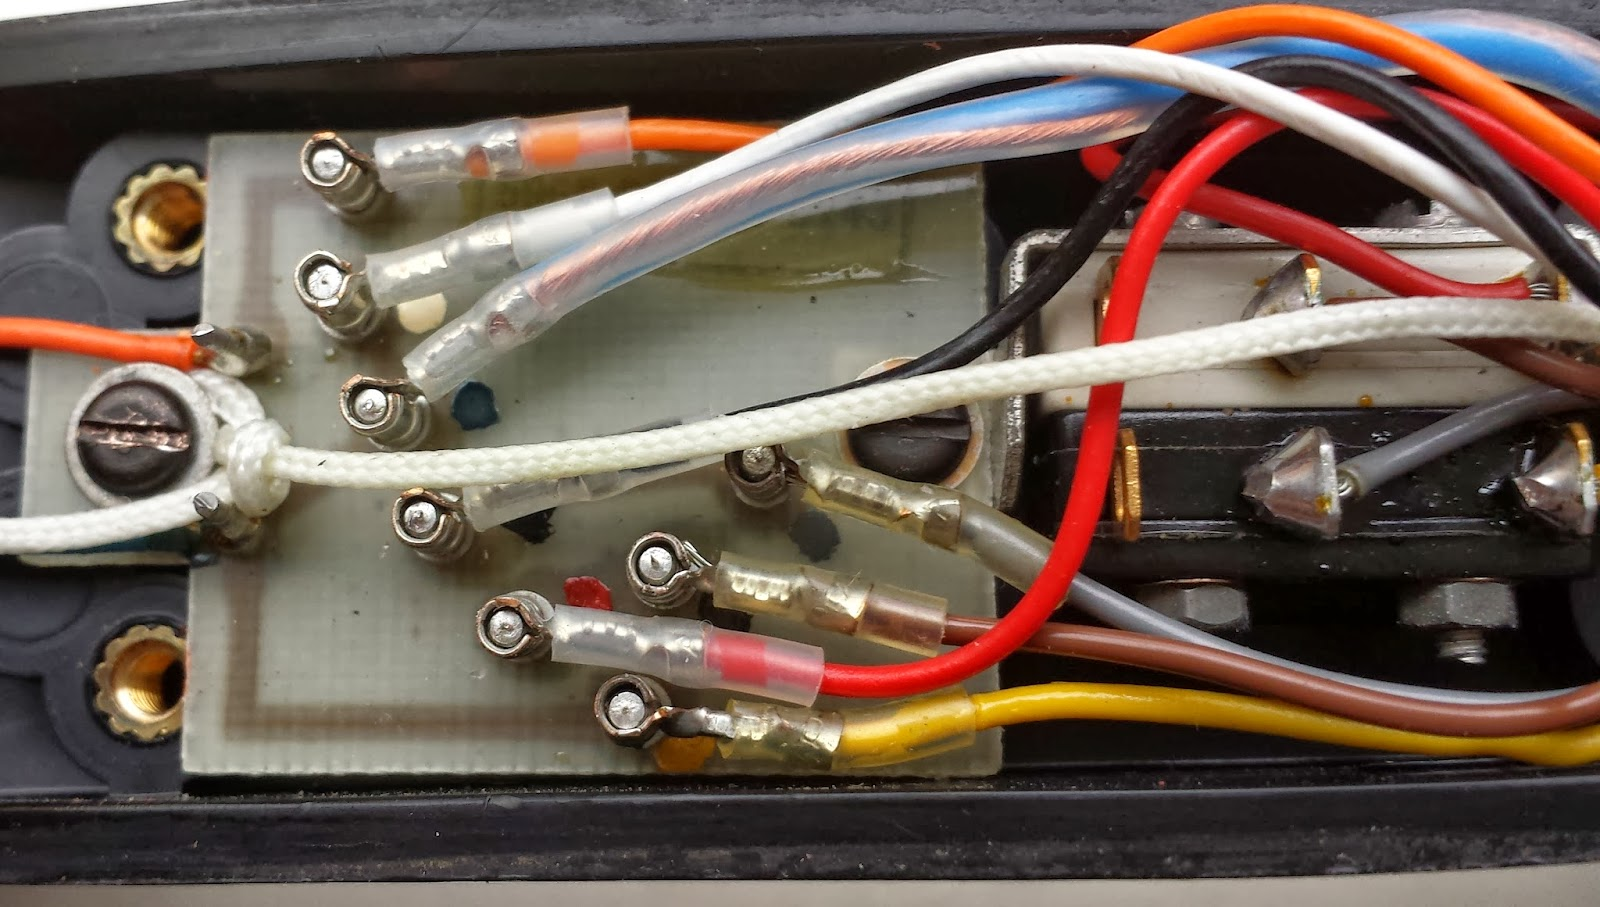 Tony Allen Ei4dib Droghedaireland Replacing A Faulty Clansman 4 Pin Handset Wiring Diagram After All This Was Done Which Only Took About Ten Minutes I Tested The With New Lead Monitoring Myself On Another Radio Audio